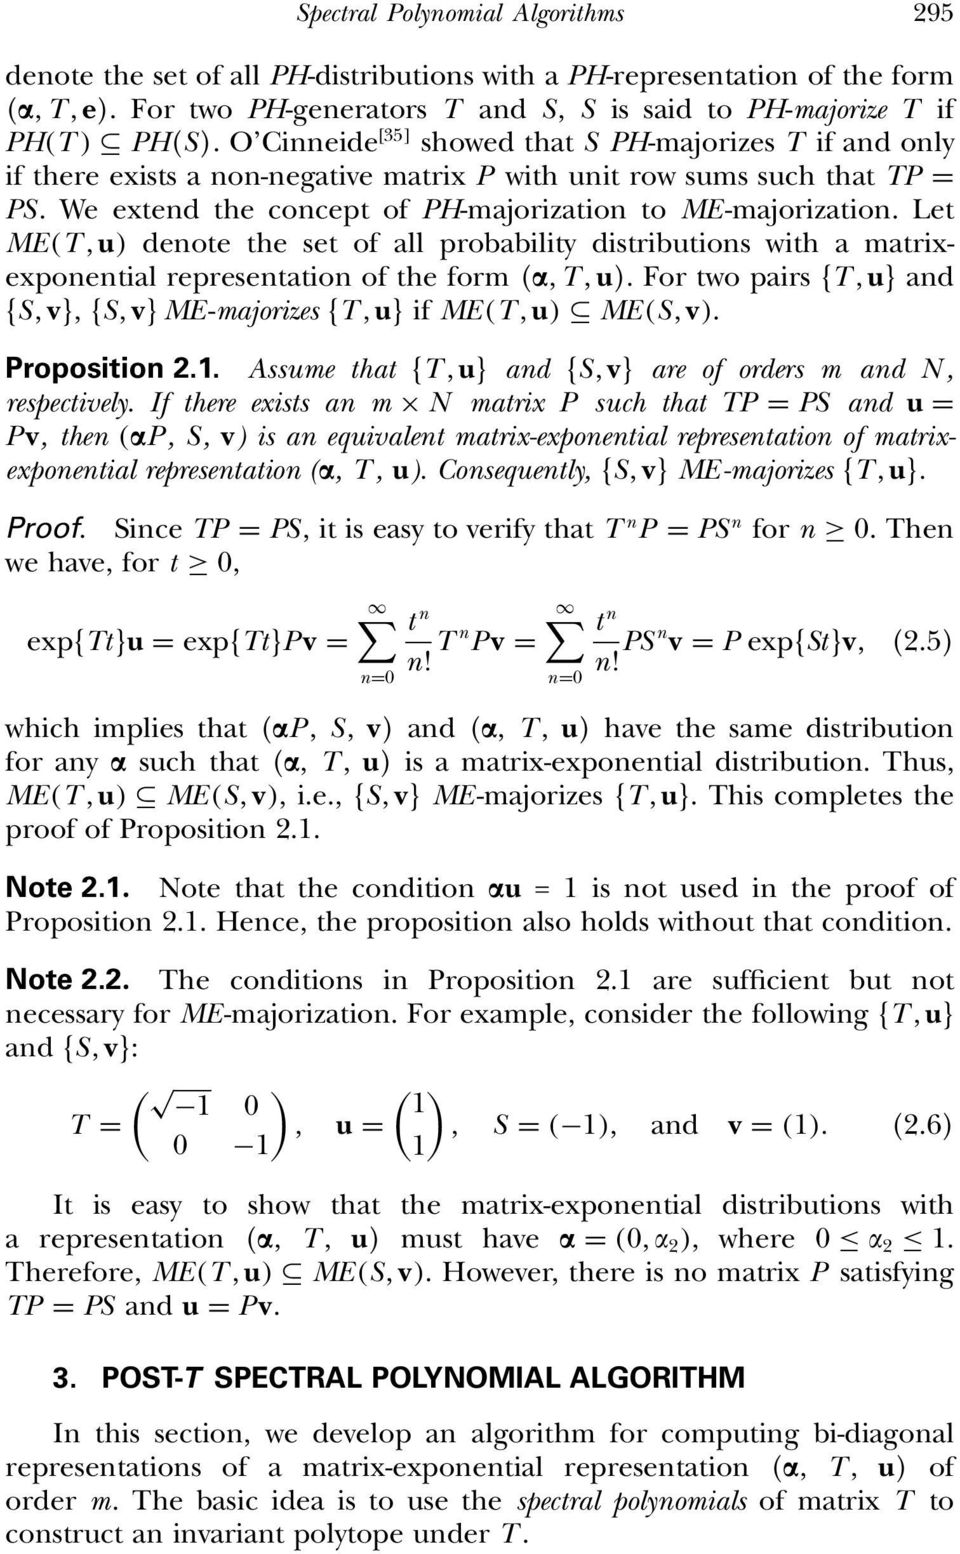 Let ME(T, u) denote the set of all probability distributions with a matrixexponential representation of the form (, T, u). For two pairs T, u and S, v, S, v ME-majorizes T, u if ME(T, u) ME(S, v).